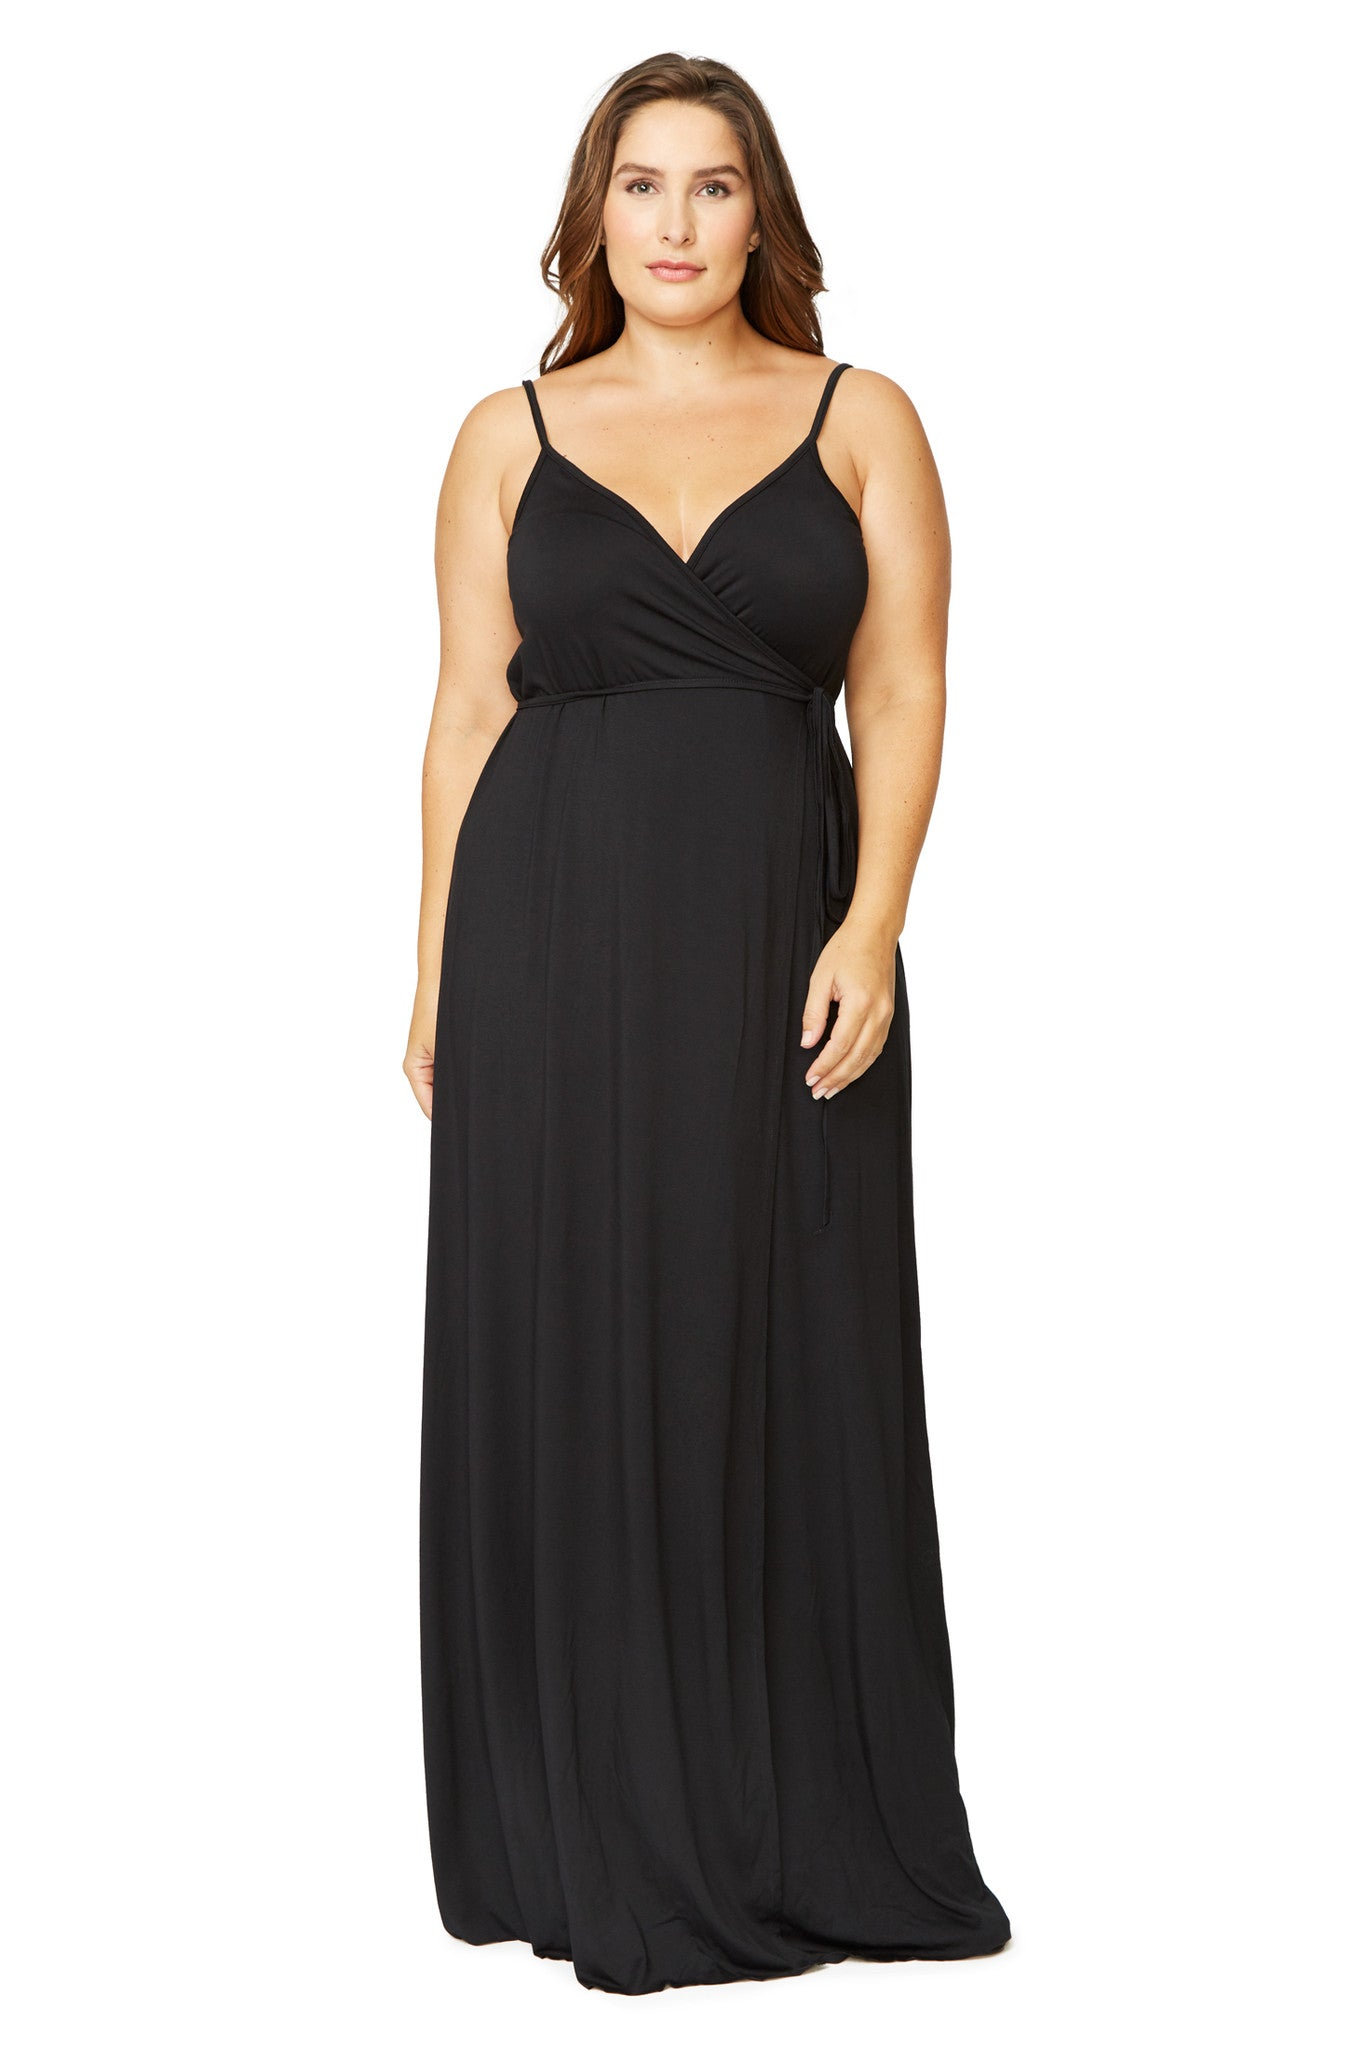 SPAGHETTI WRAP DRESS WL - BLACK, PLUS SIZE